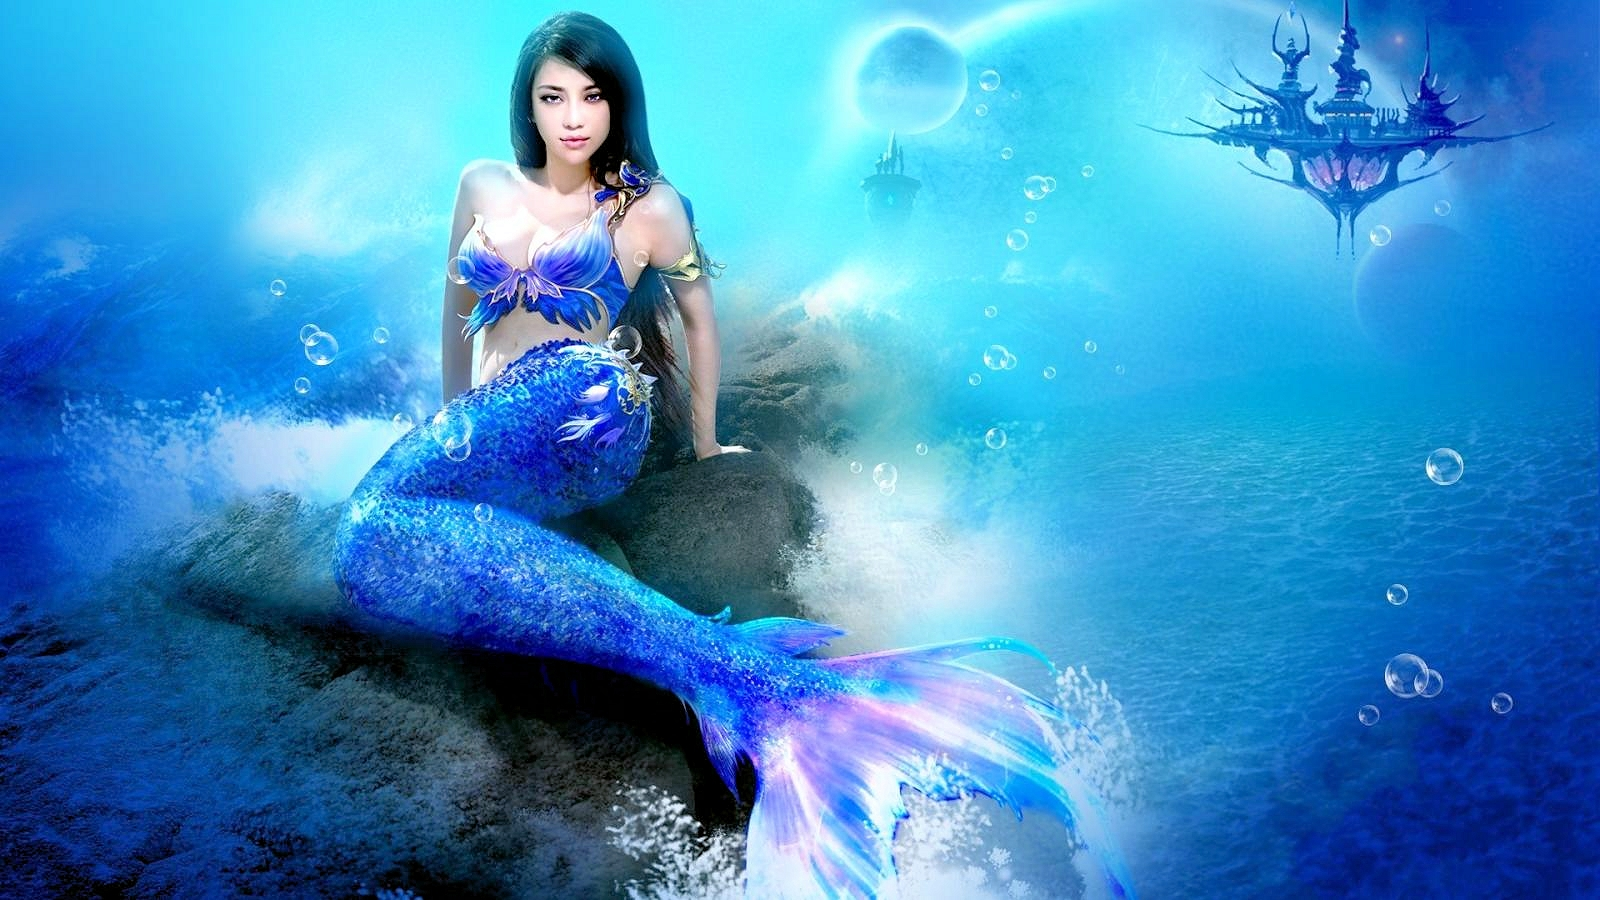 wallpaper beautiful mermaid pictures - photo #9